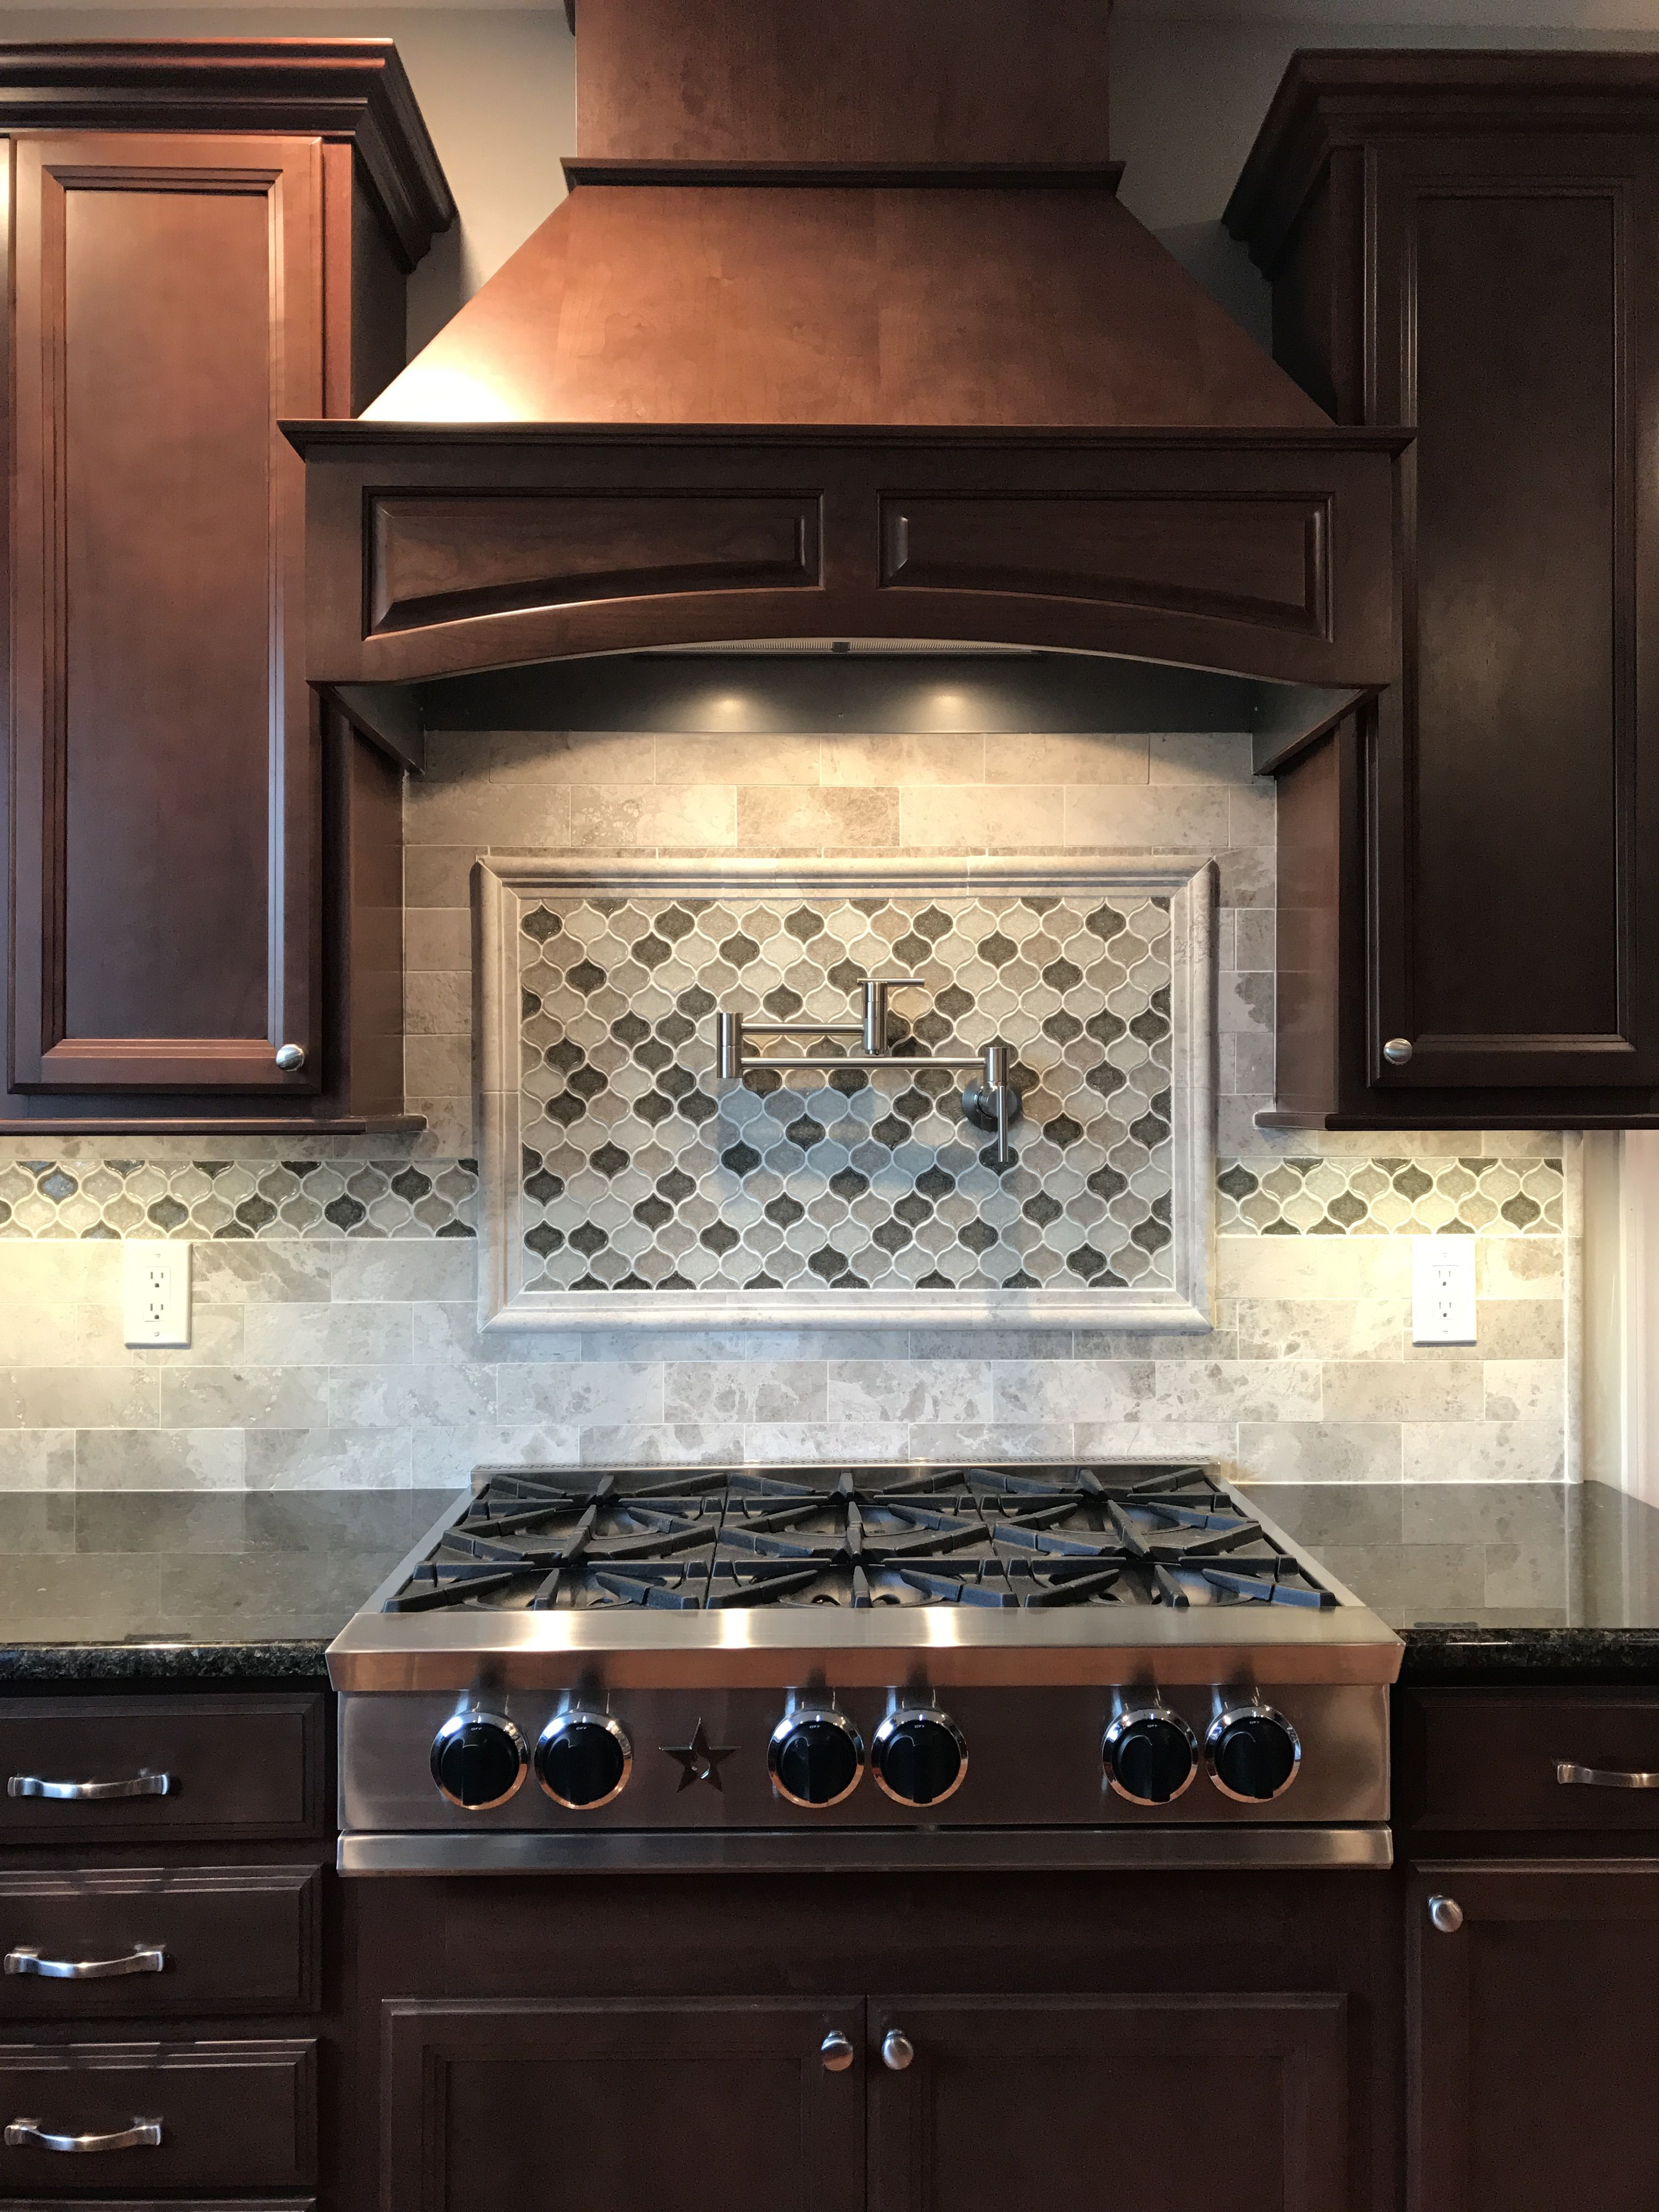 Bluestar Rnb 36 Range Marble Subway Backsplash Arabesque Mosaic